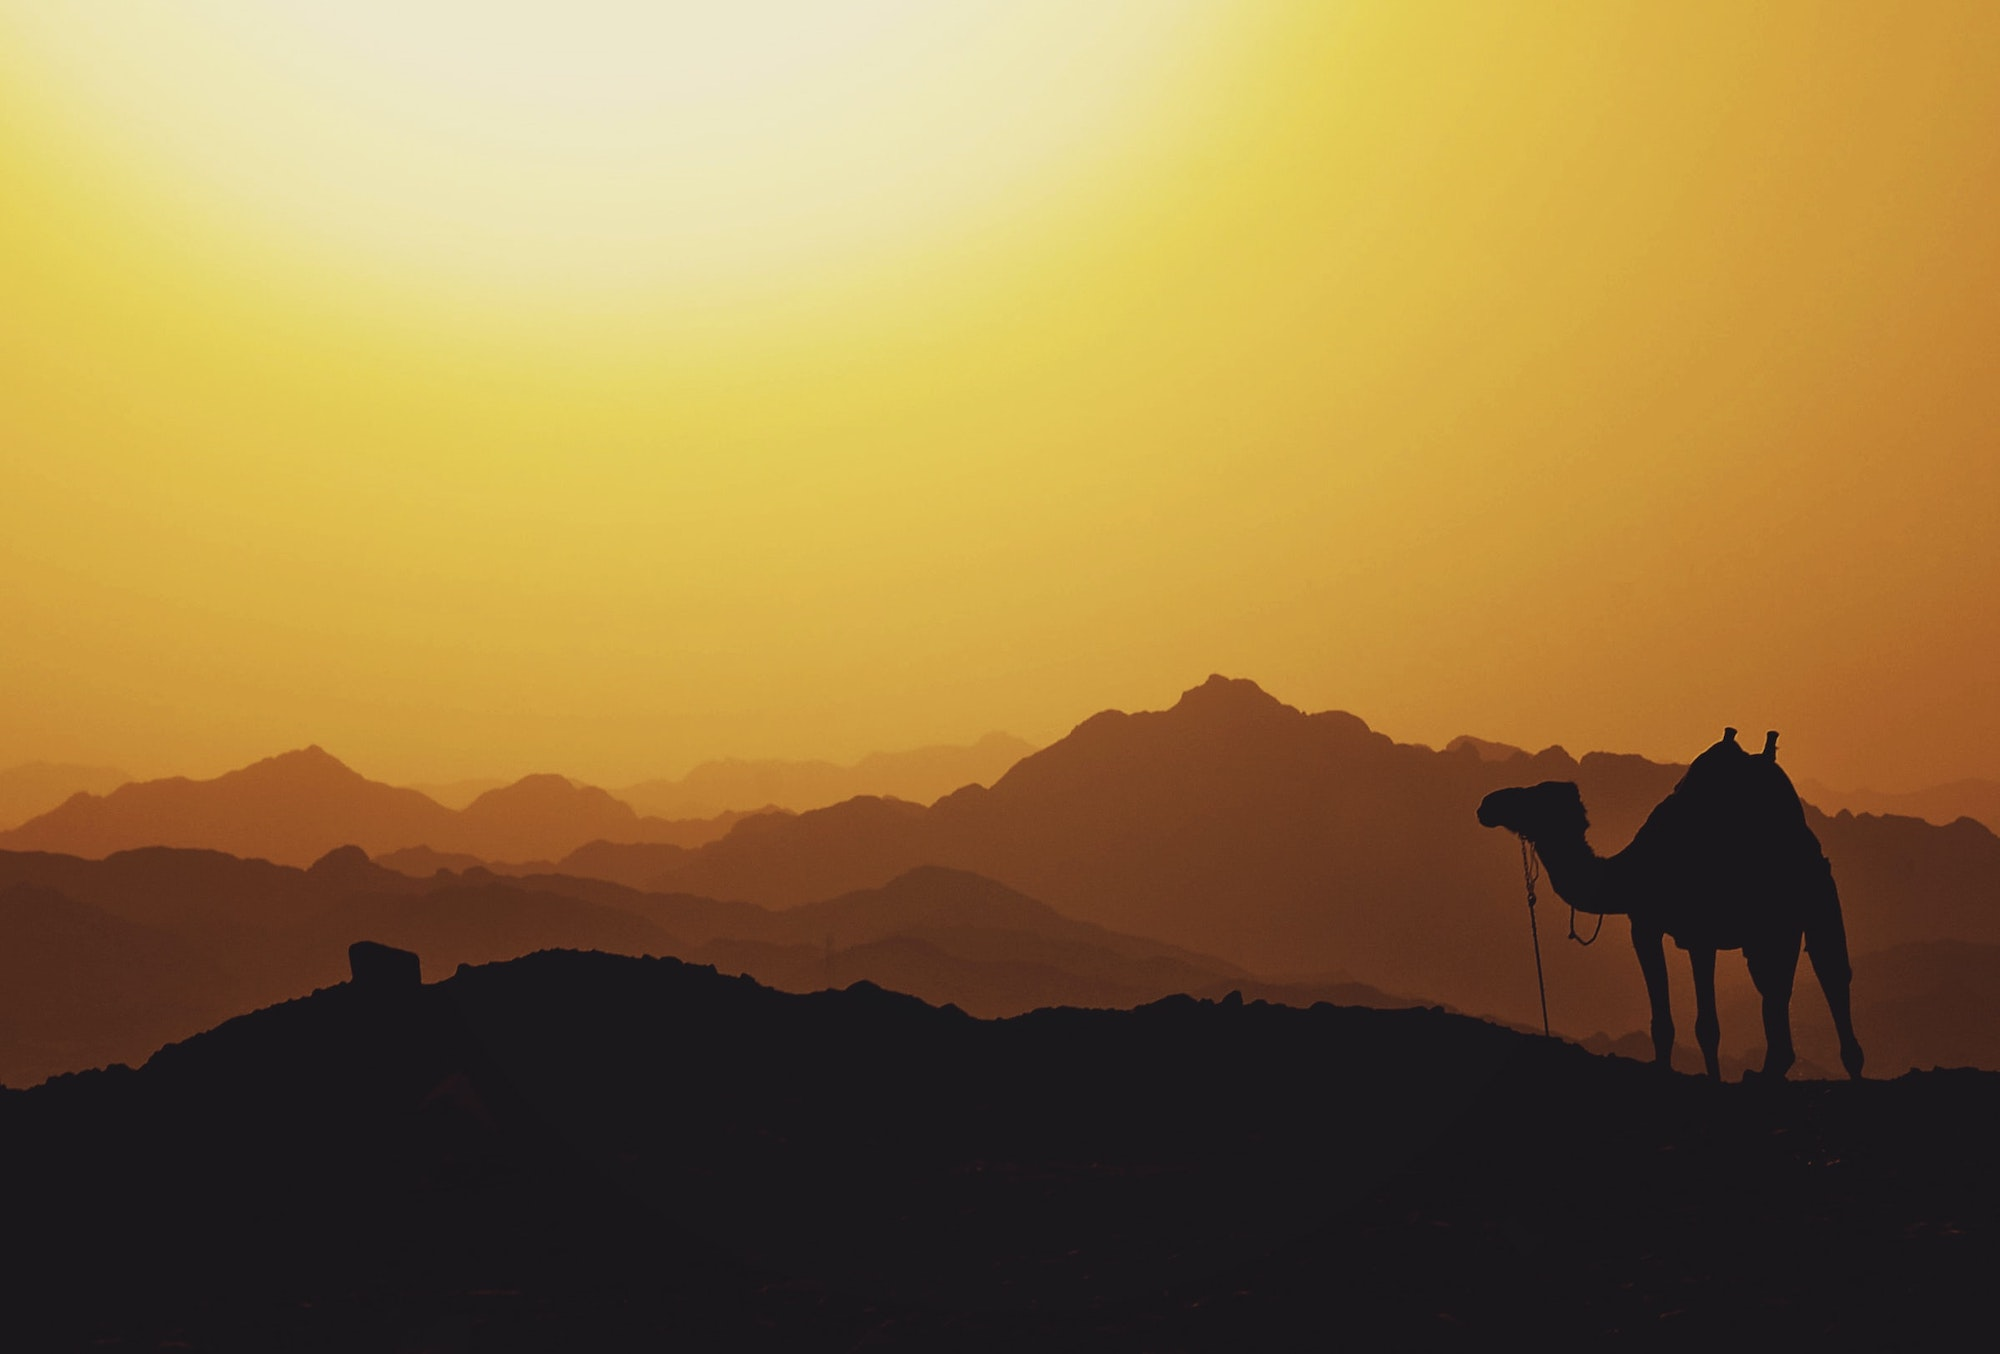 Thumb image for the post on Addiction Overseas: The Middle East